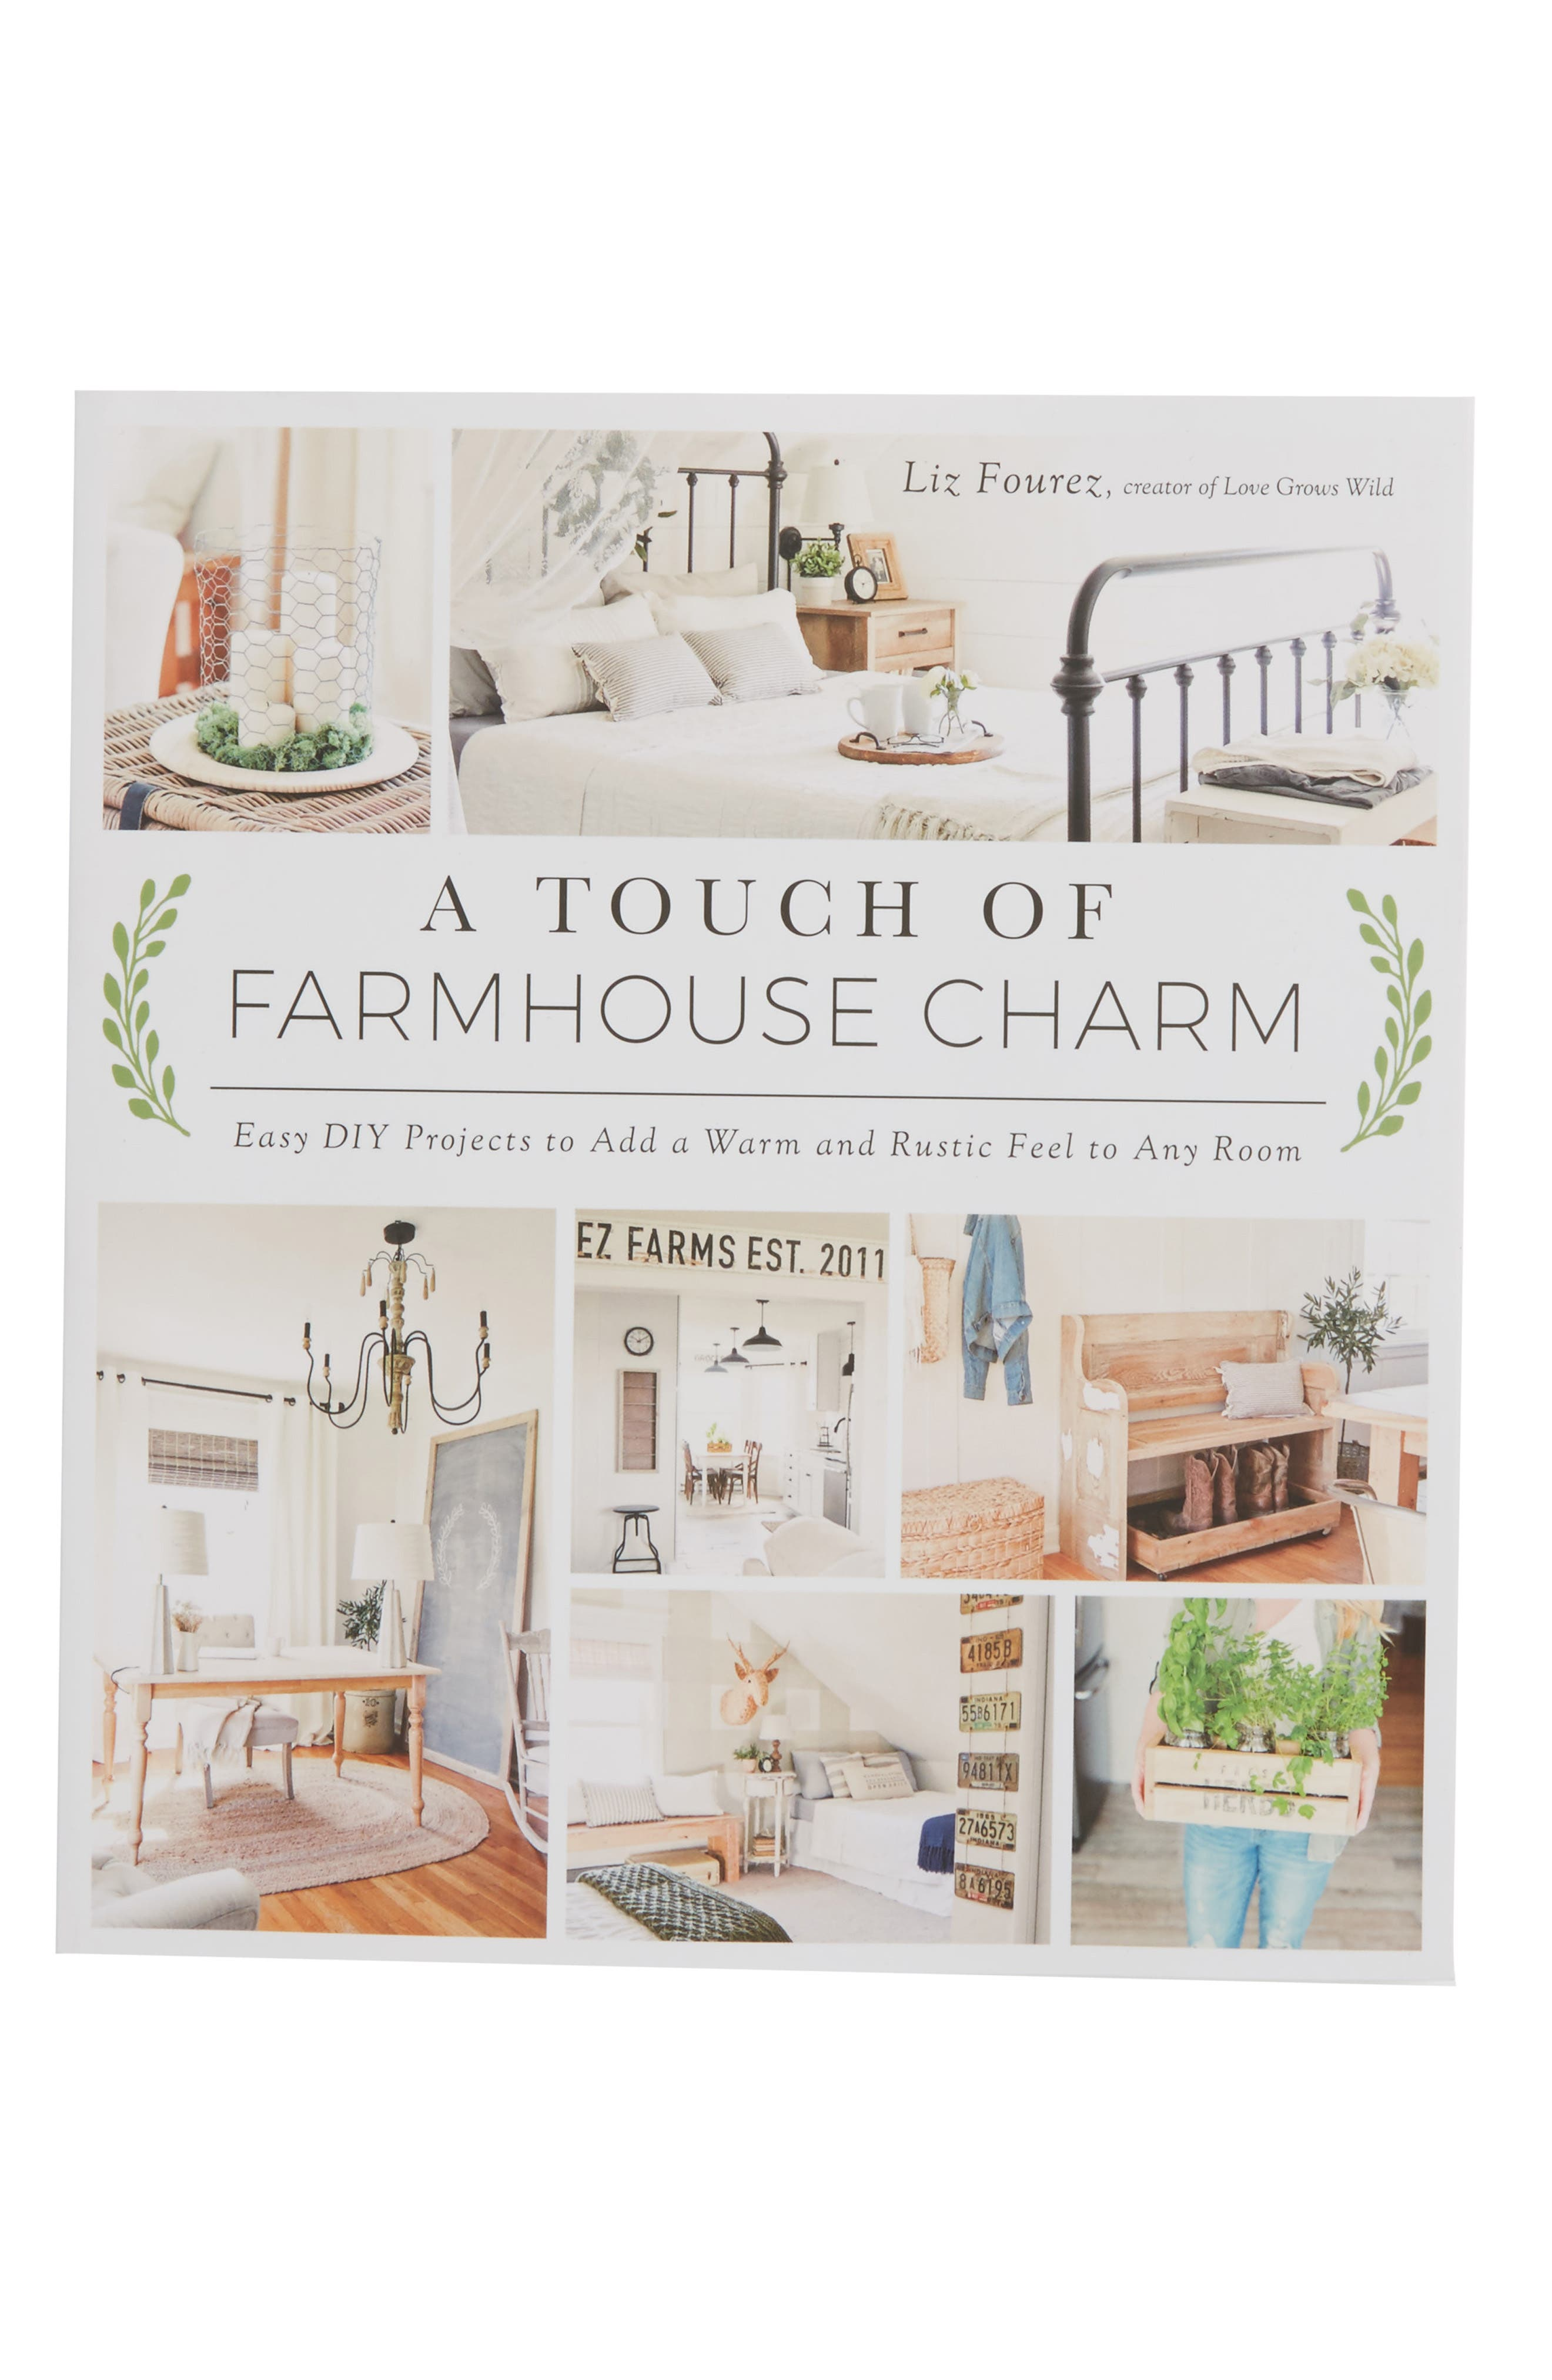 A Touch of Farmhouse Charm: Easy DIY Projects to Add a Warm and Rustic Feel to Any Room Book